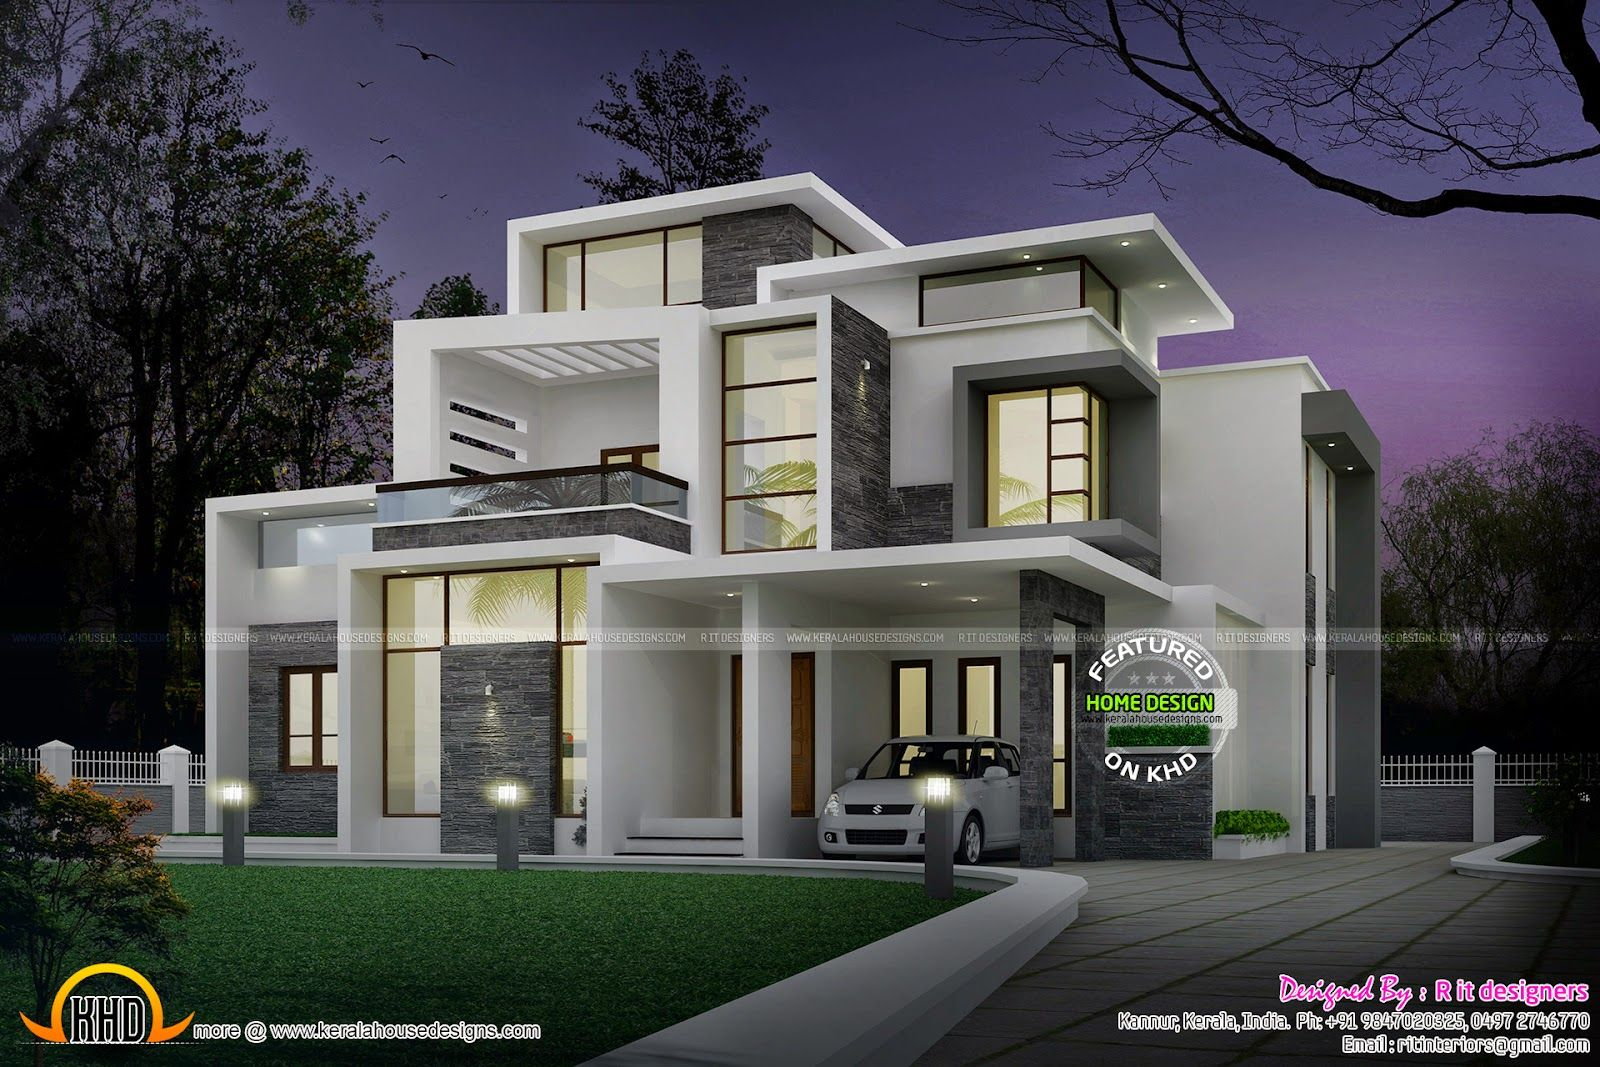 Grand contemporary home design kerala home design and for Kerala home designs contemporary